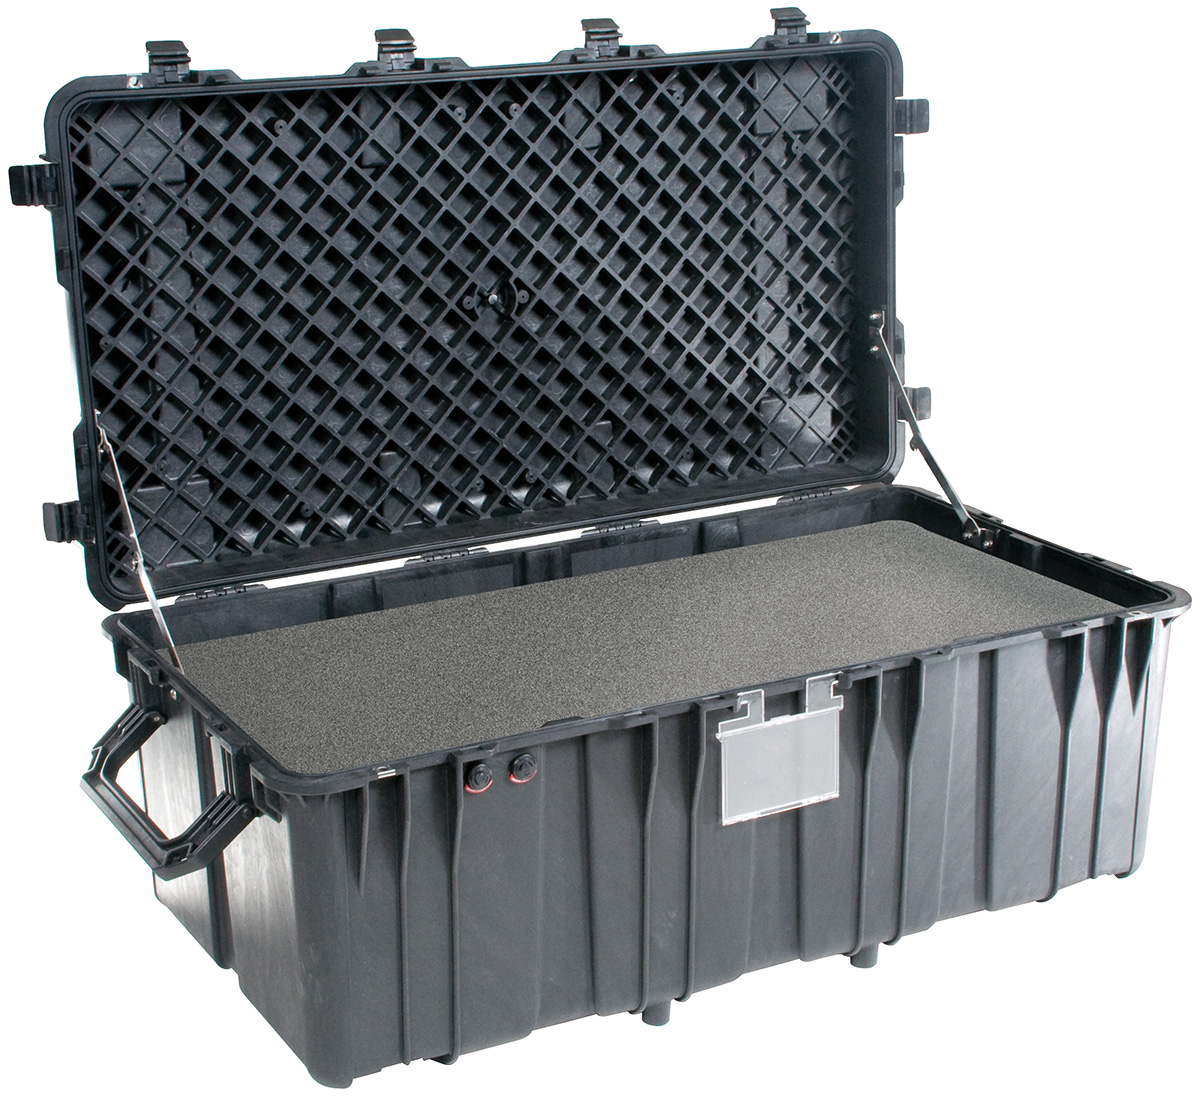 pelican 0550 protective equipment transport case